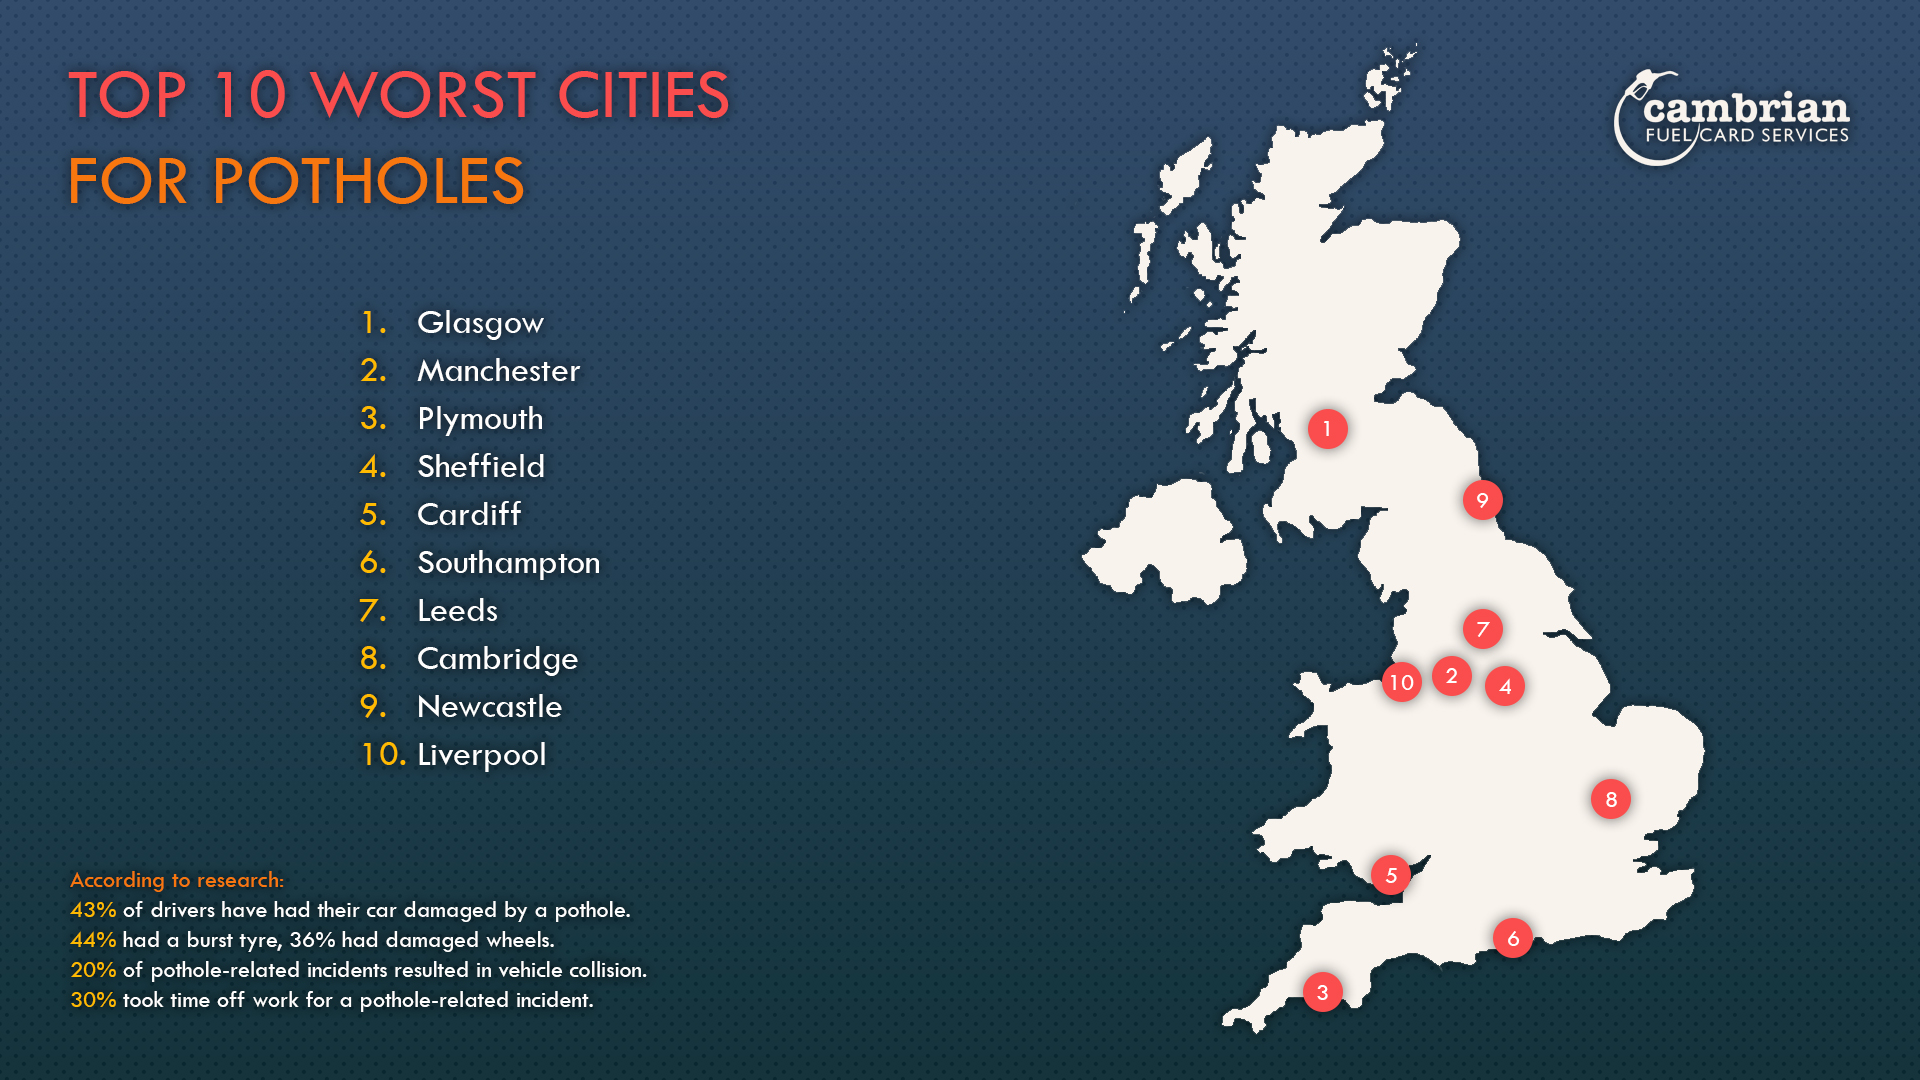 top 10 worst cities for potholes